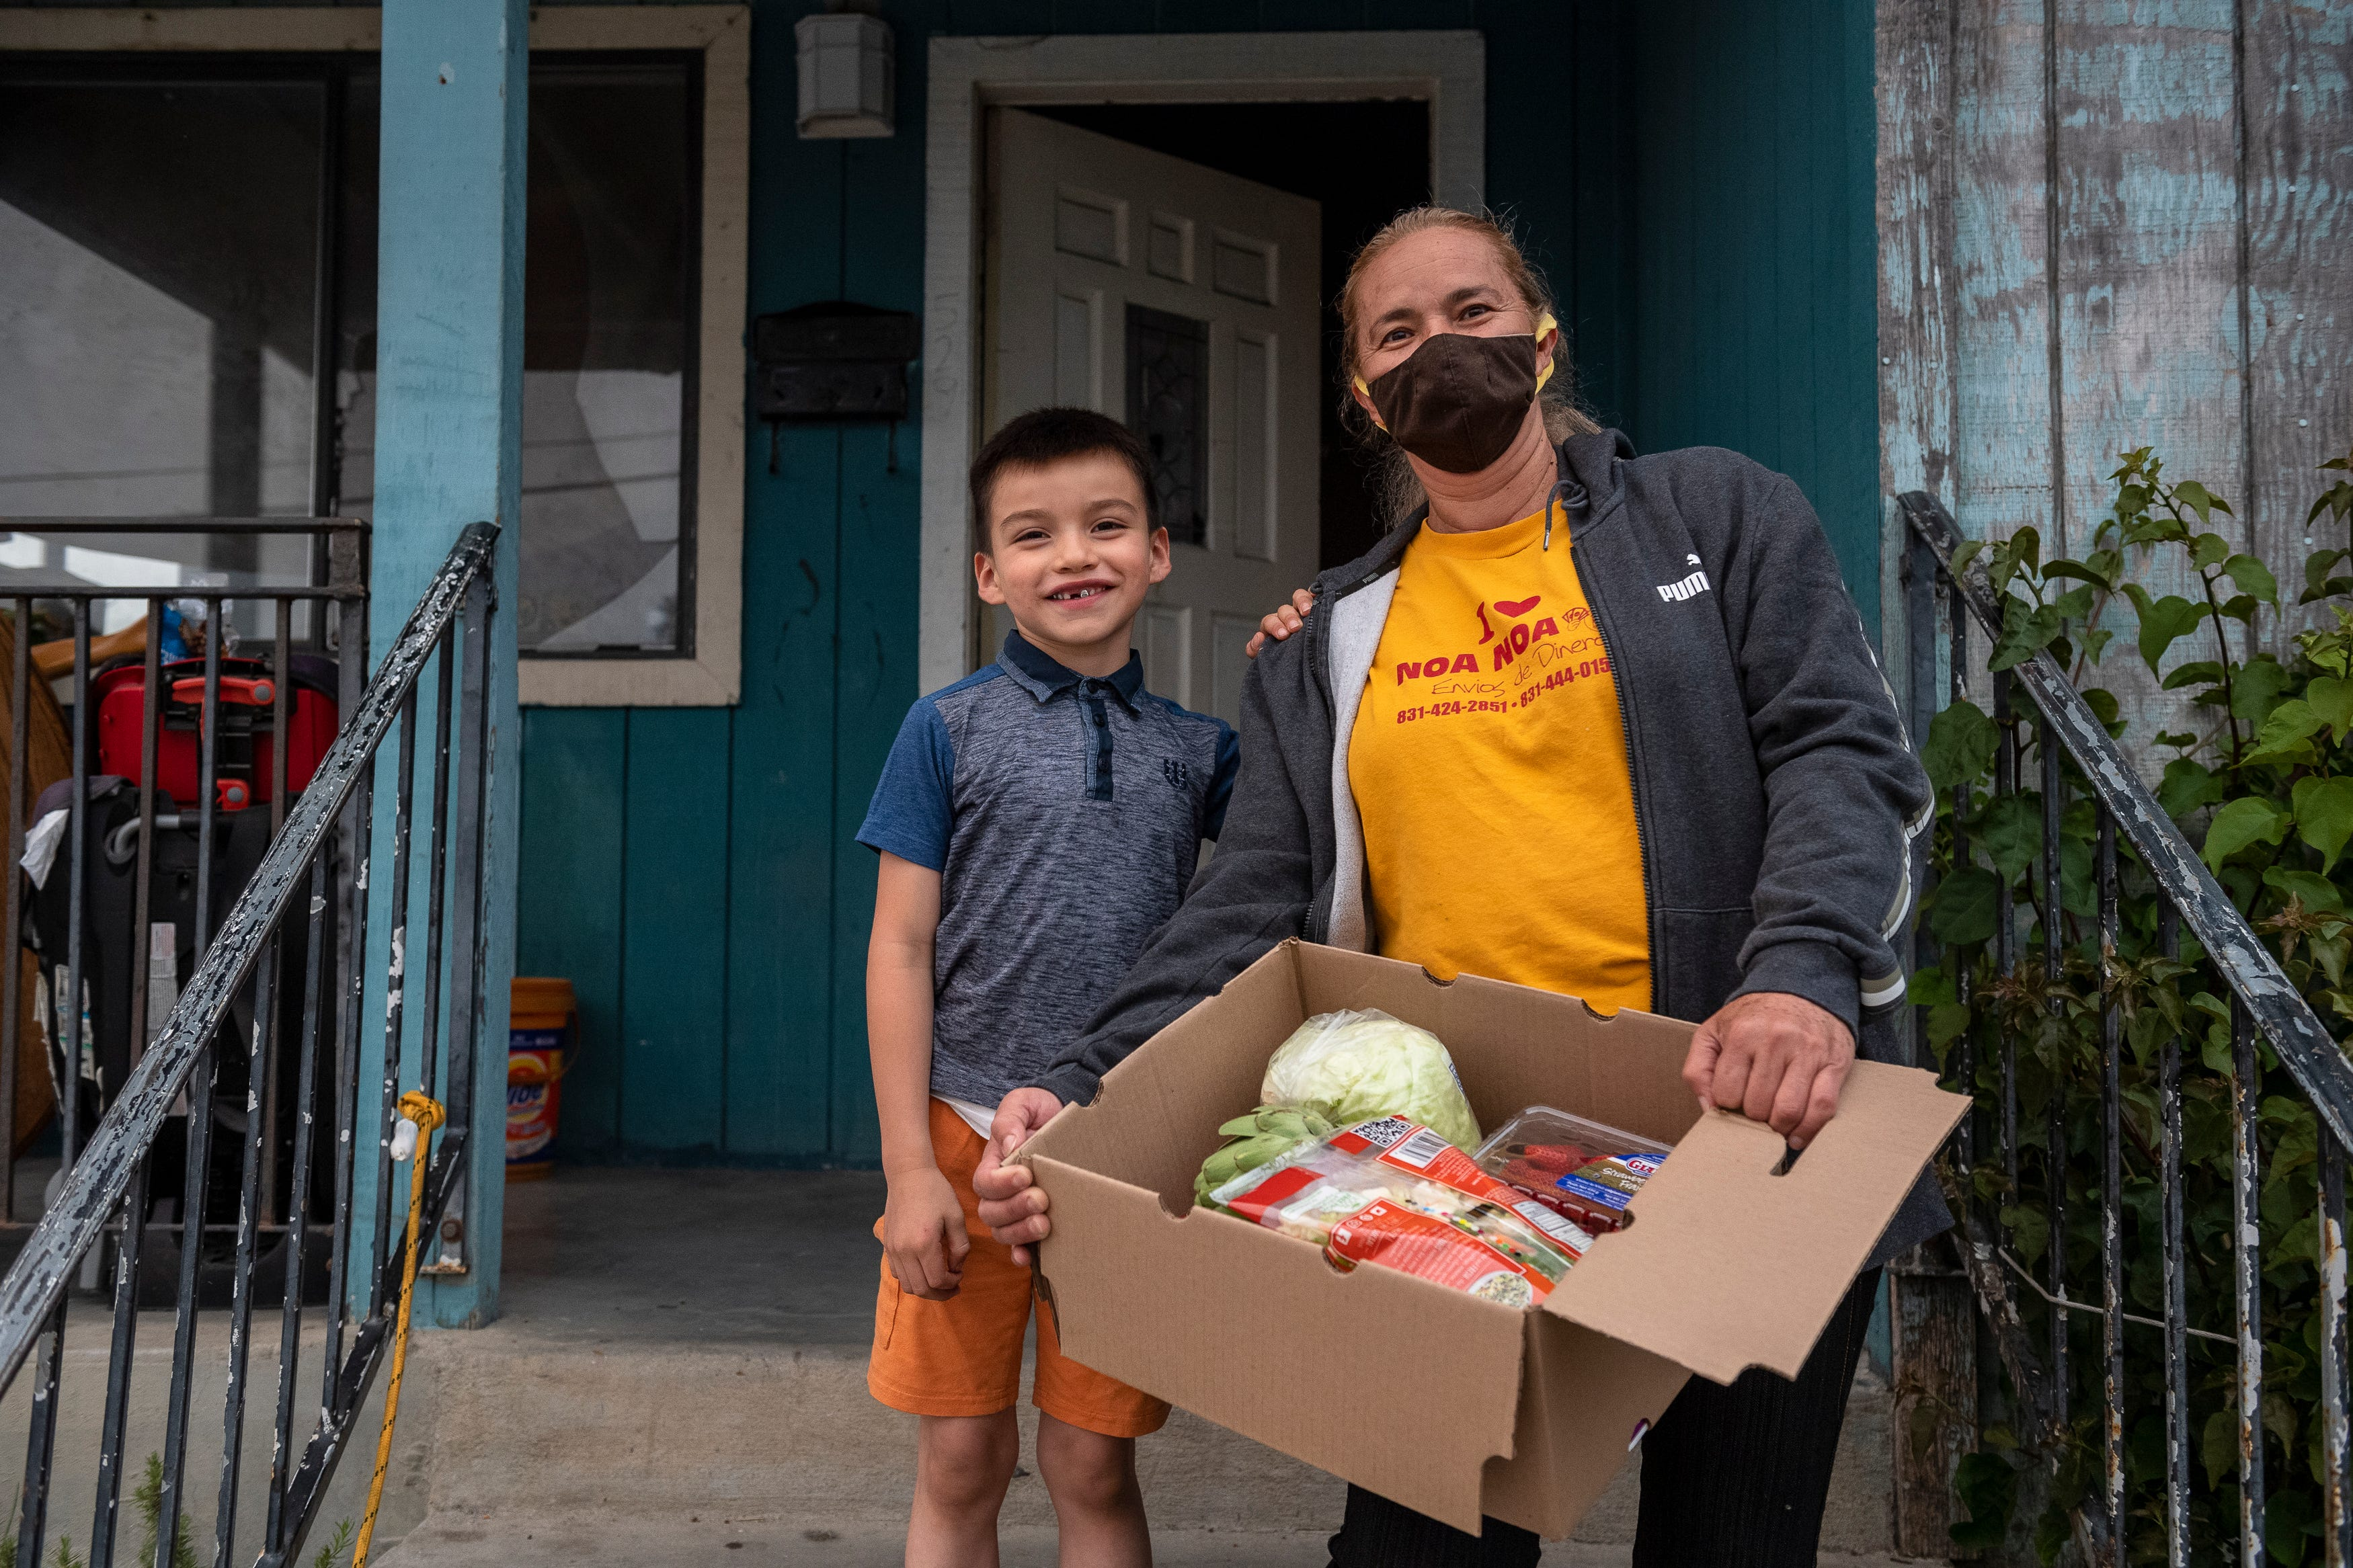 """Kender Ricardez Tobon, left, stands on a door step as he rests his left hand on the shoulder of Eufemia """"Jenni"""" Aguilar. She holds a box filled with different vegetables and fruits donated to them by the Future Citizens foundation, Taylor Farms Center for Learning in Salinas, Calif., on Wednesday, Aug.19, 2020."""